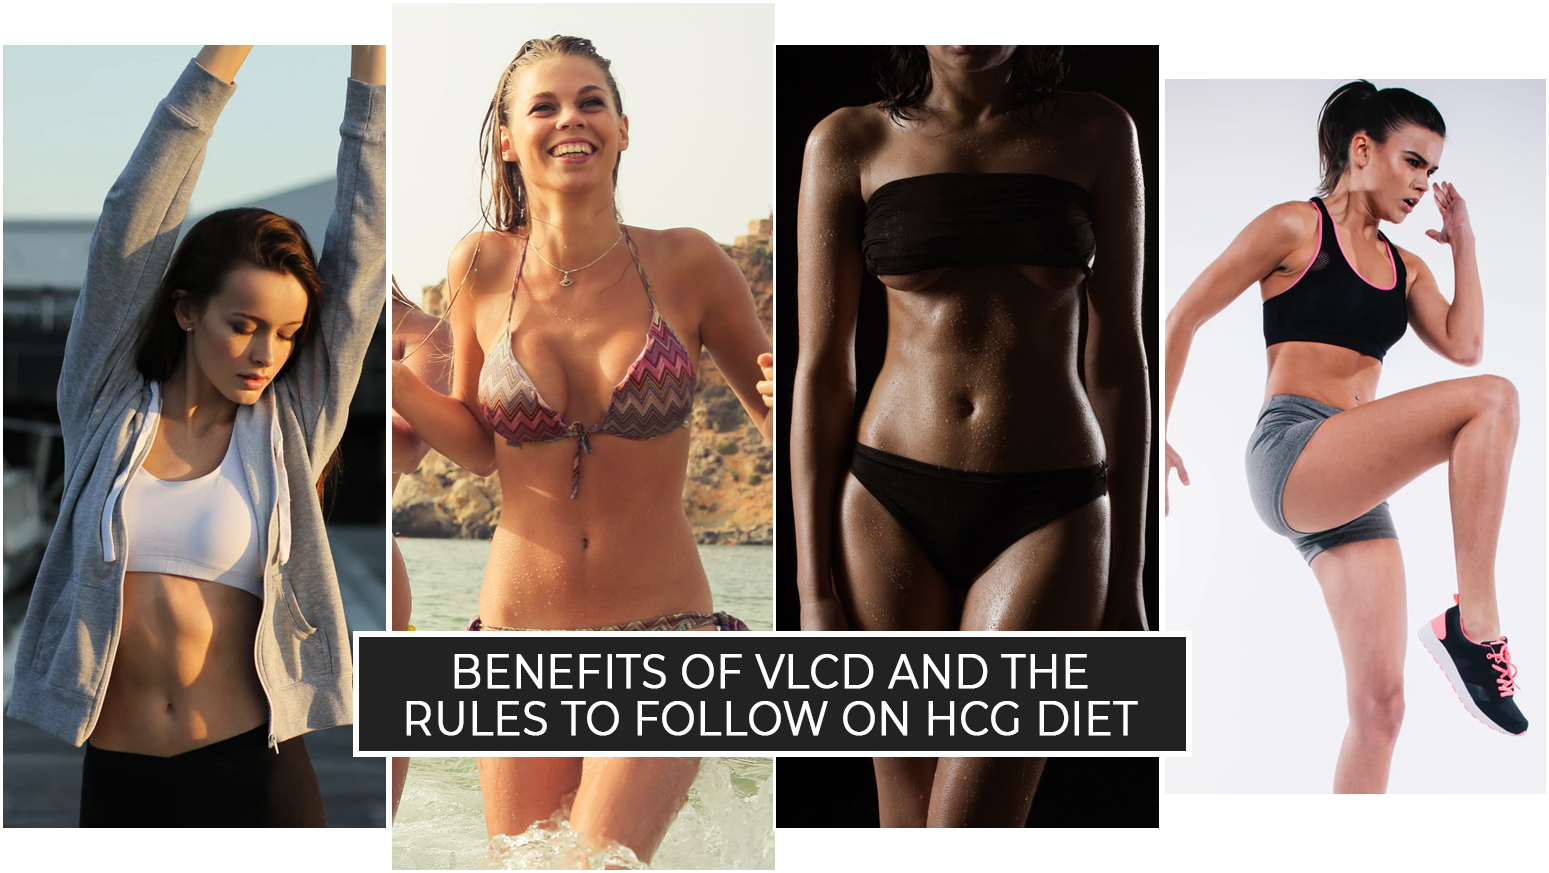 BENEFITS OF VLCD AND THE RULES TO FOLLOW ON HCG DIET